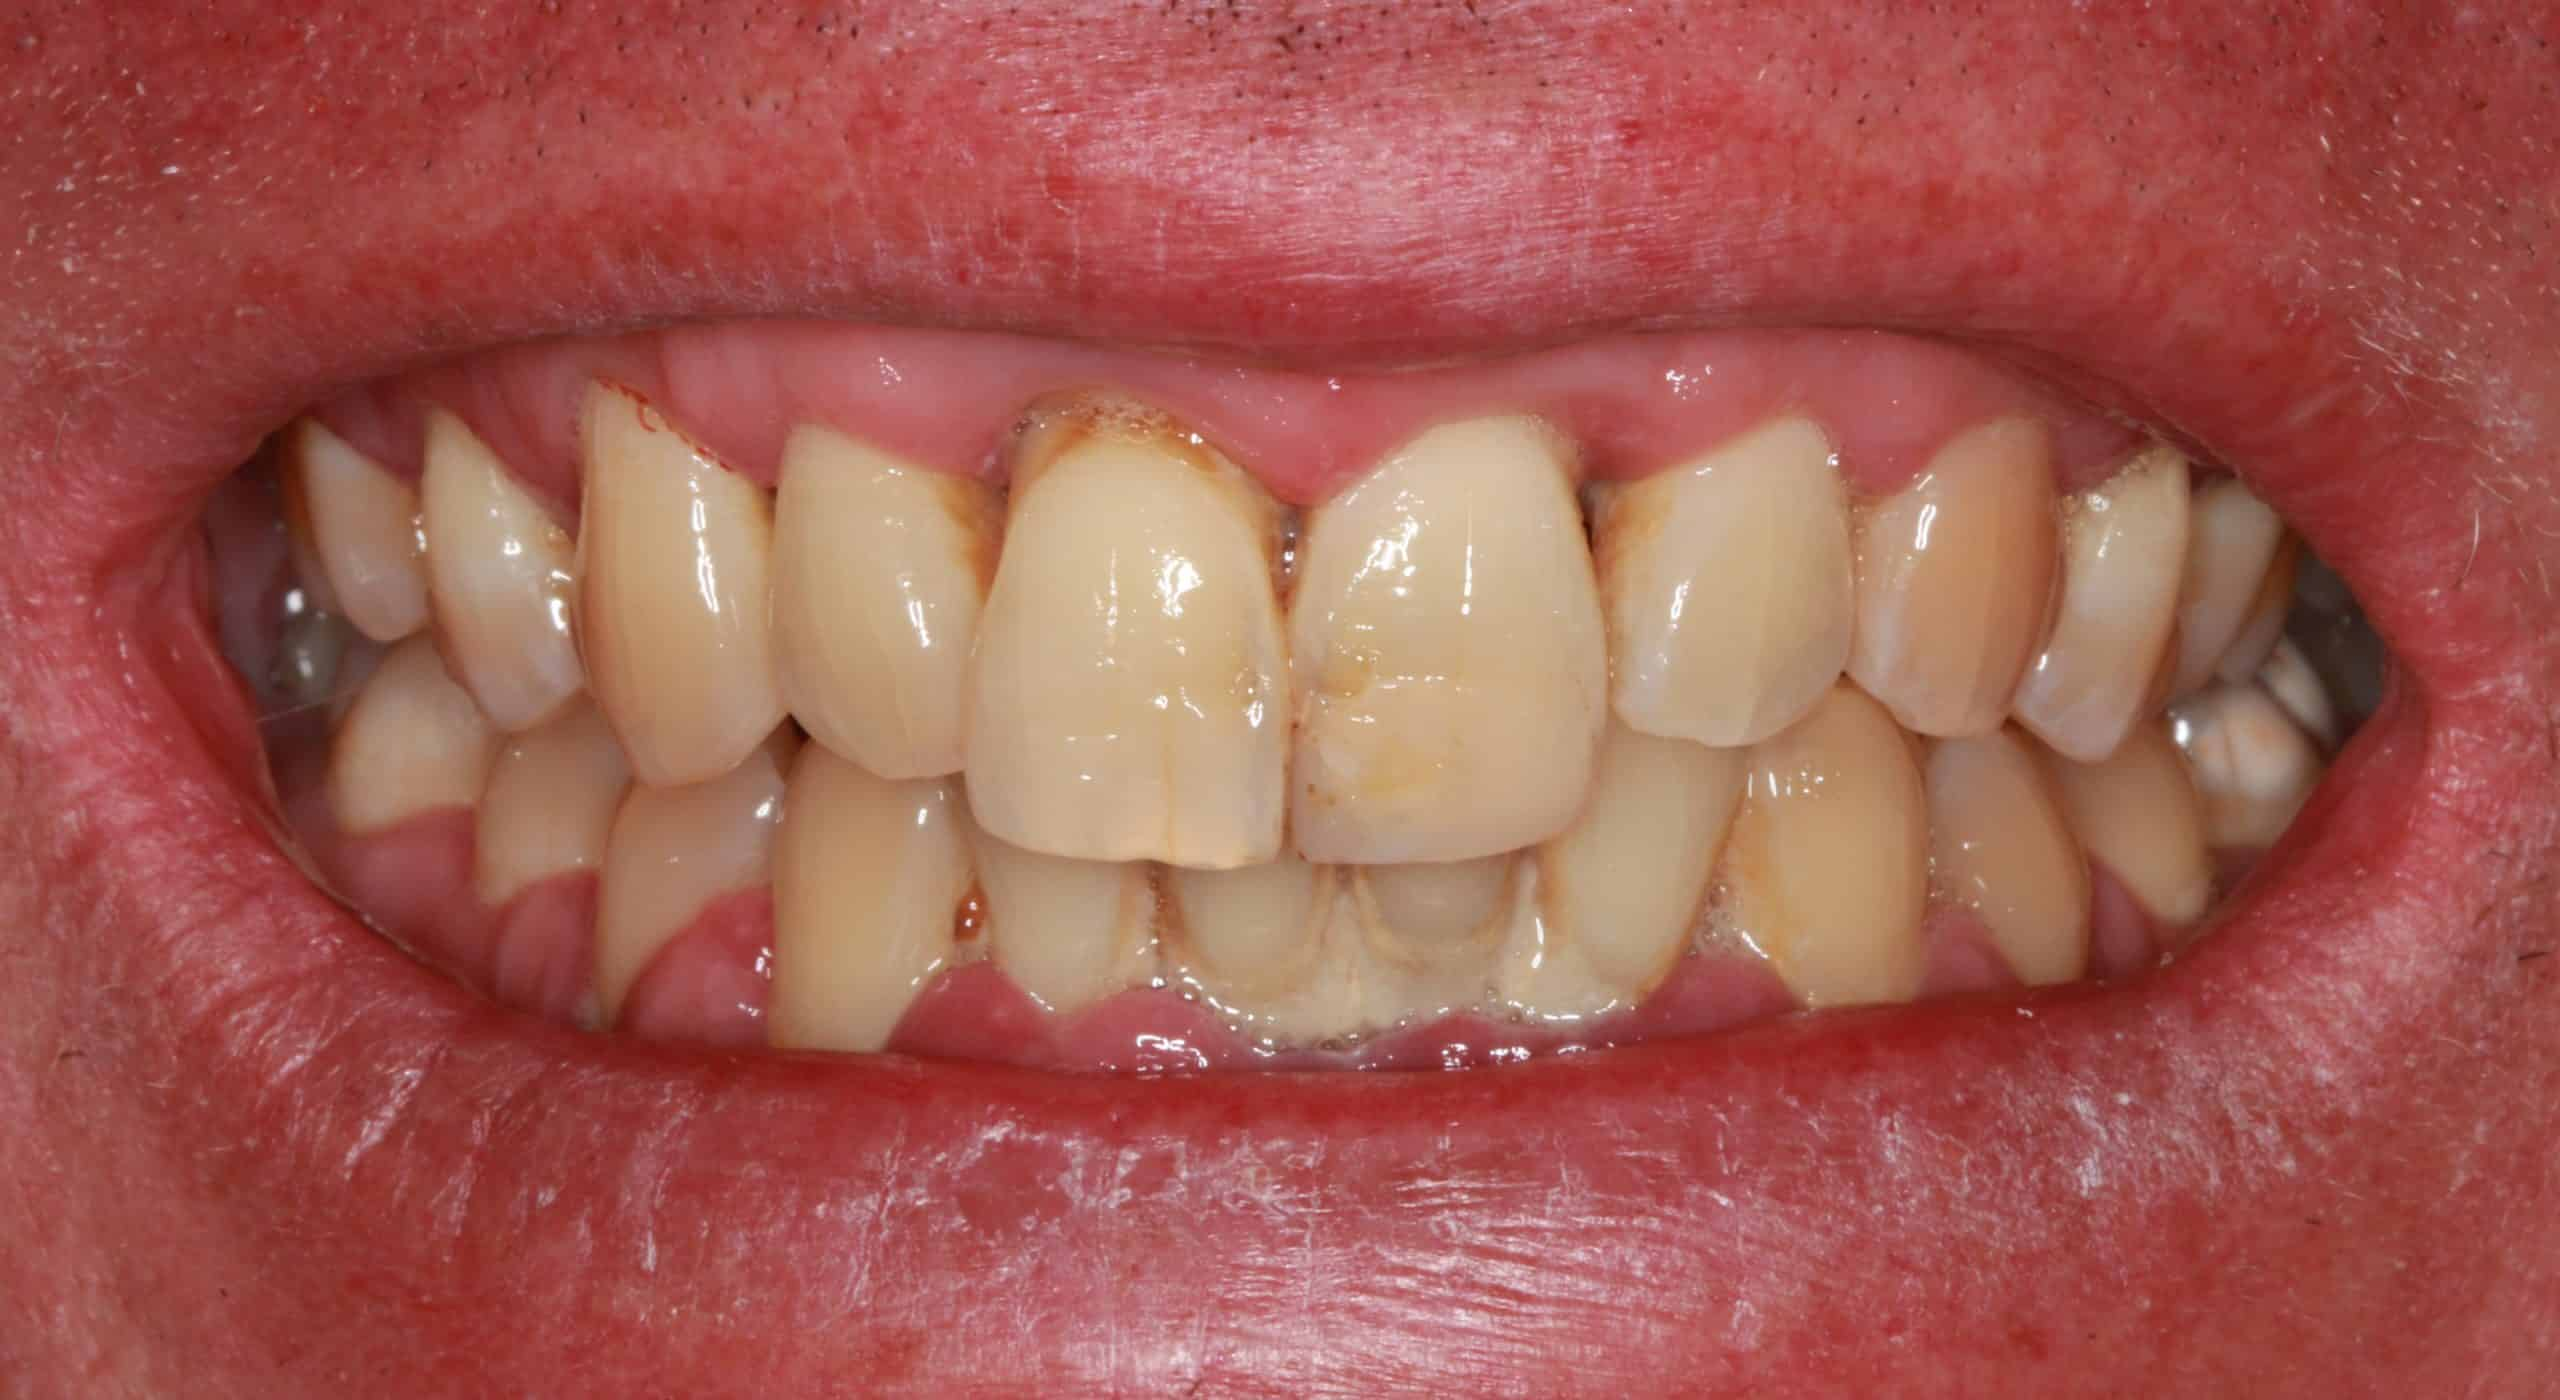 Periodontal Therapy and 8 Composite Veneers